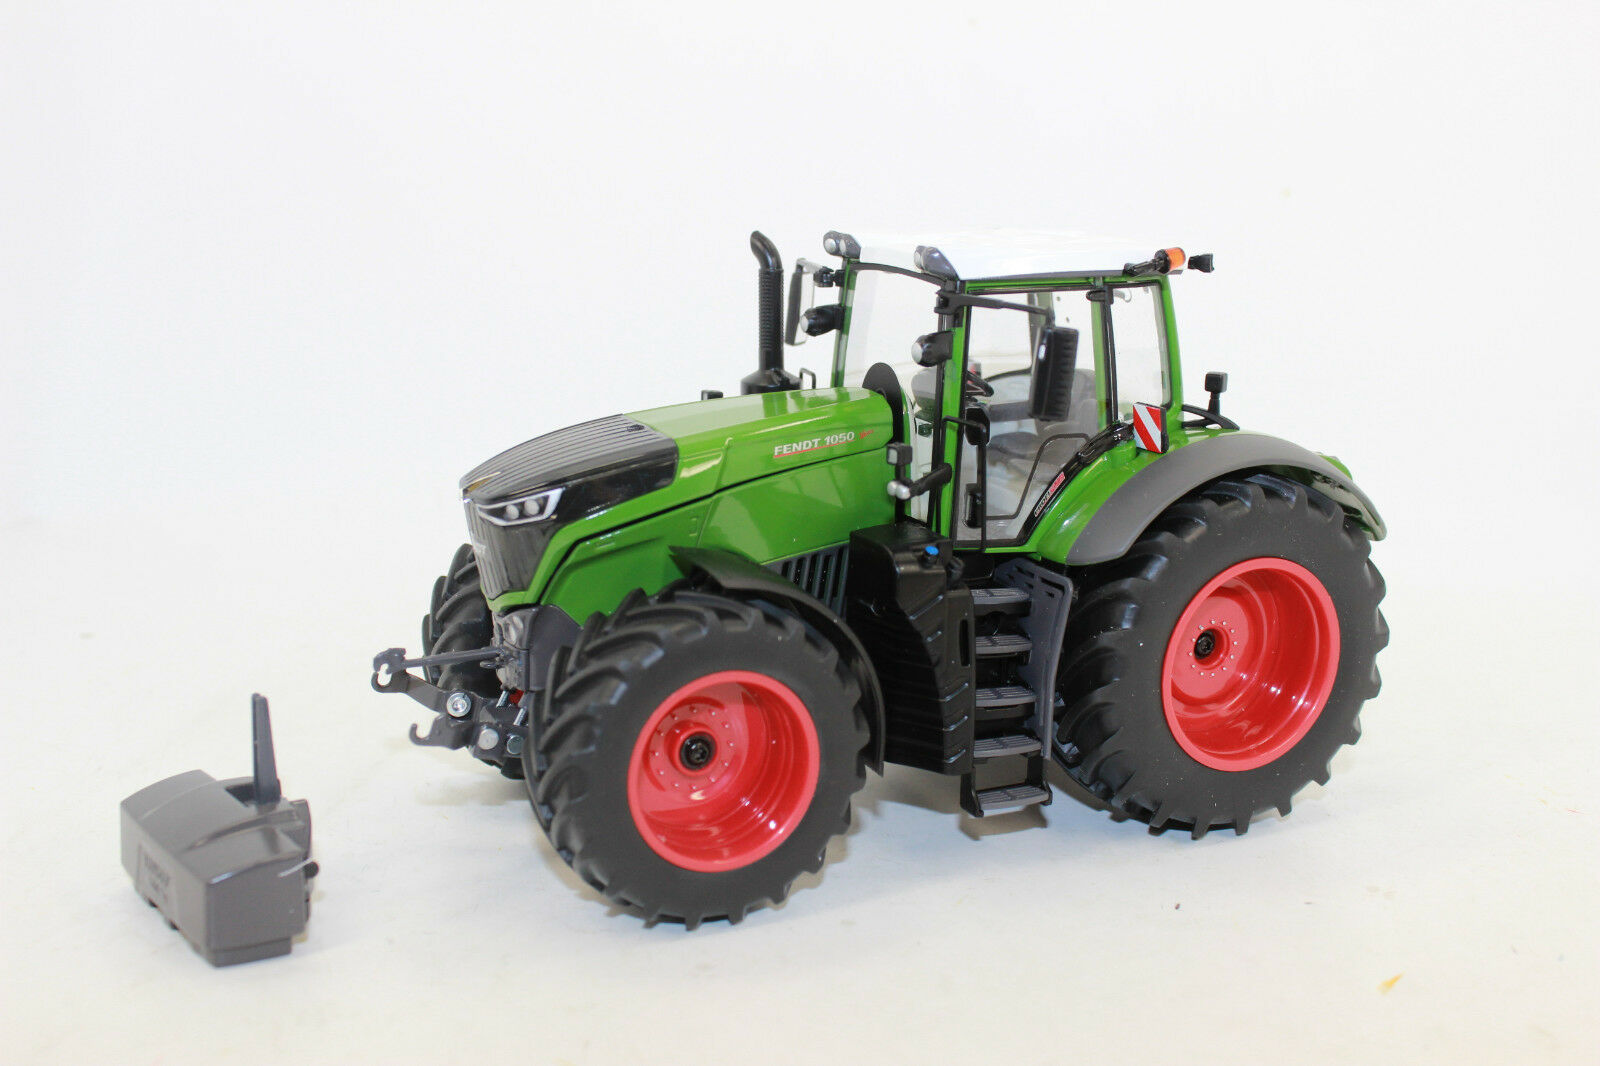 Wiking 773 49 Fendt Vario 1050 077349 1 3 2 New Boxed